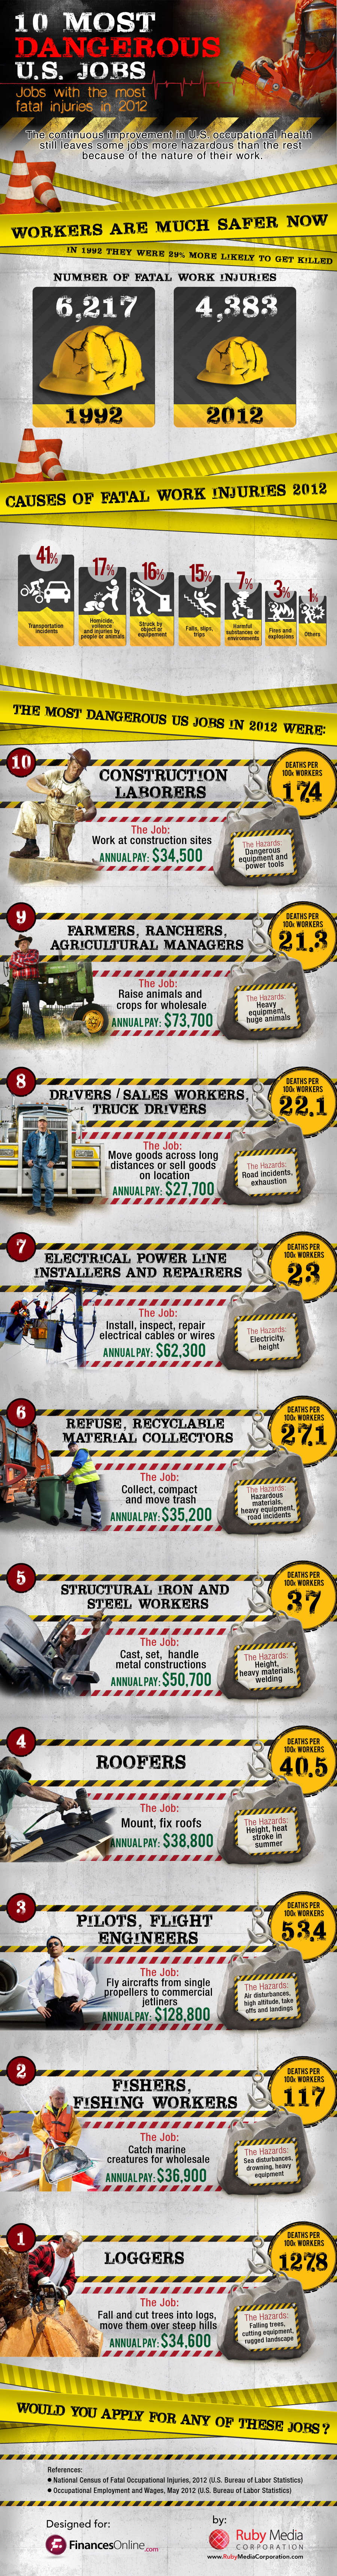 Dangerous jobs in America: It's loggers who face the most fatal injuries and employment safety hazards in 2012